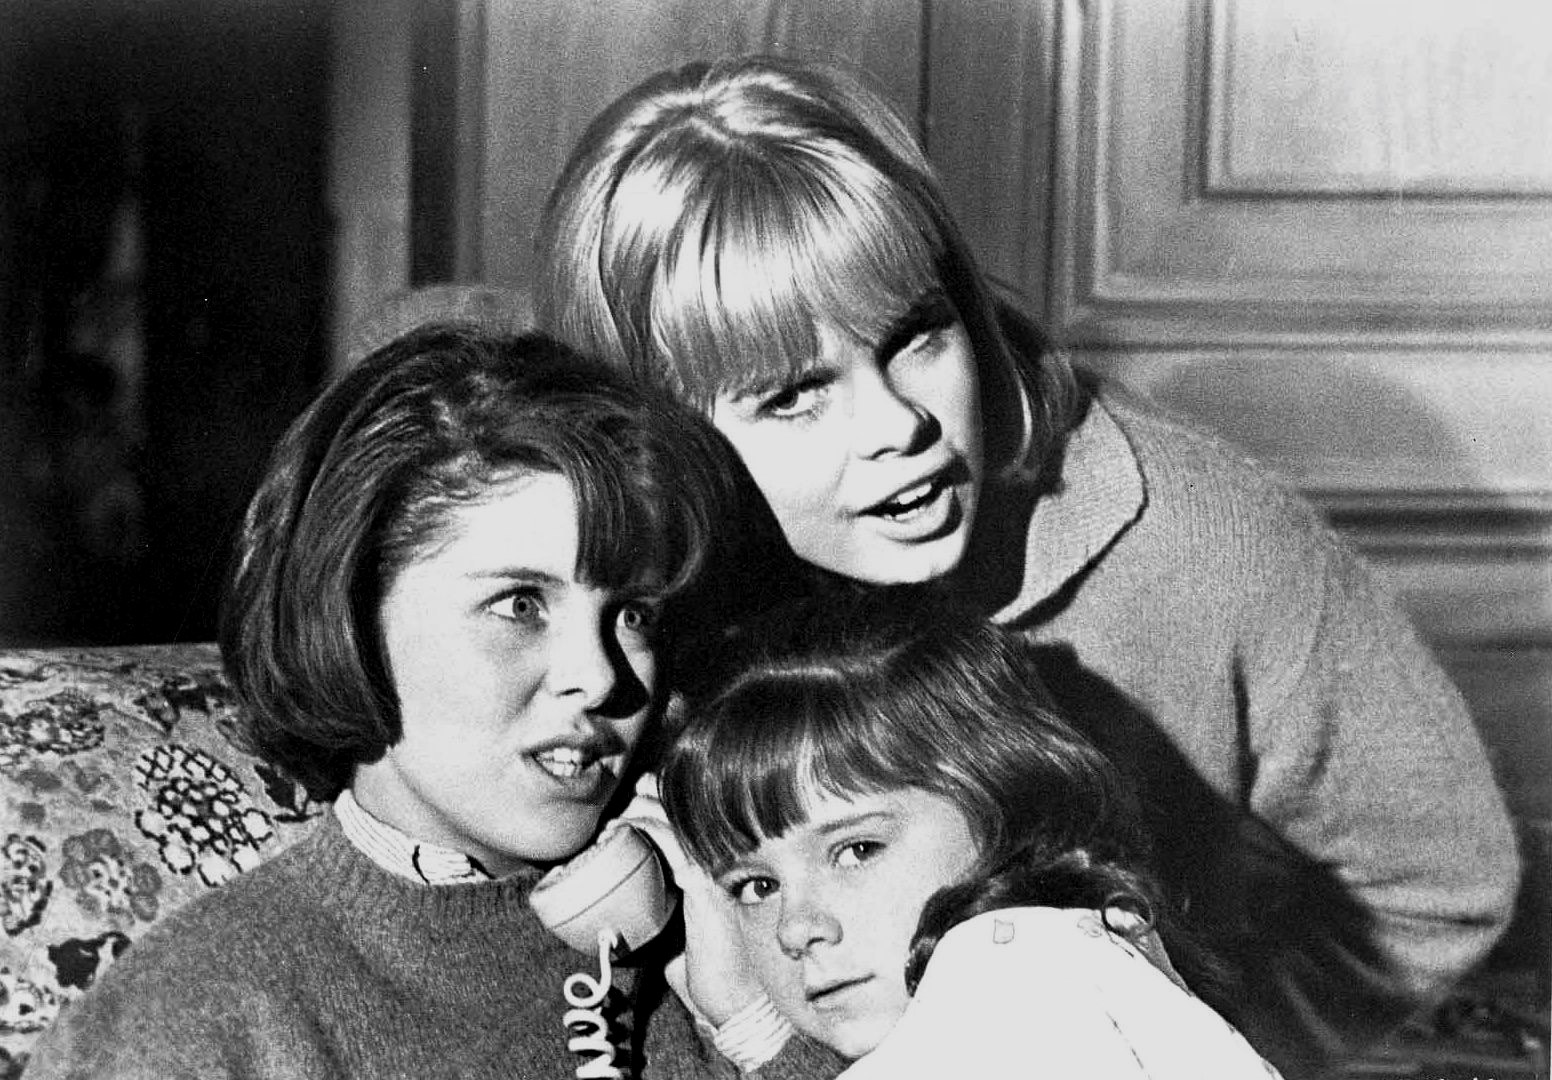 Best friends (l to r) Andi Garrett and Sarah Lane and the former's young sister Sharyl Locke (c) make prank calls  in I Saw What You Did (1965)